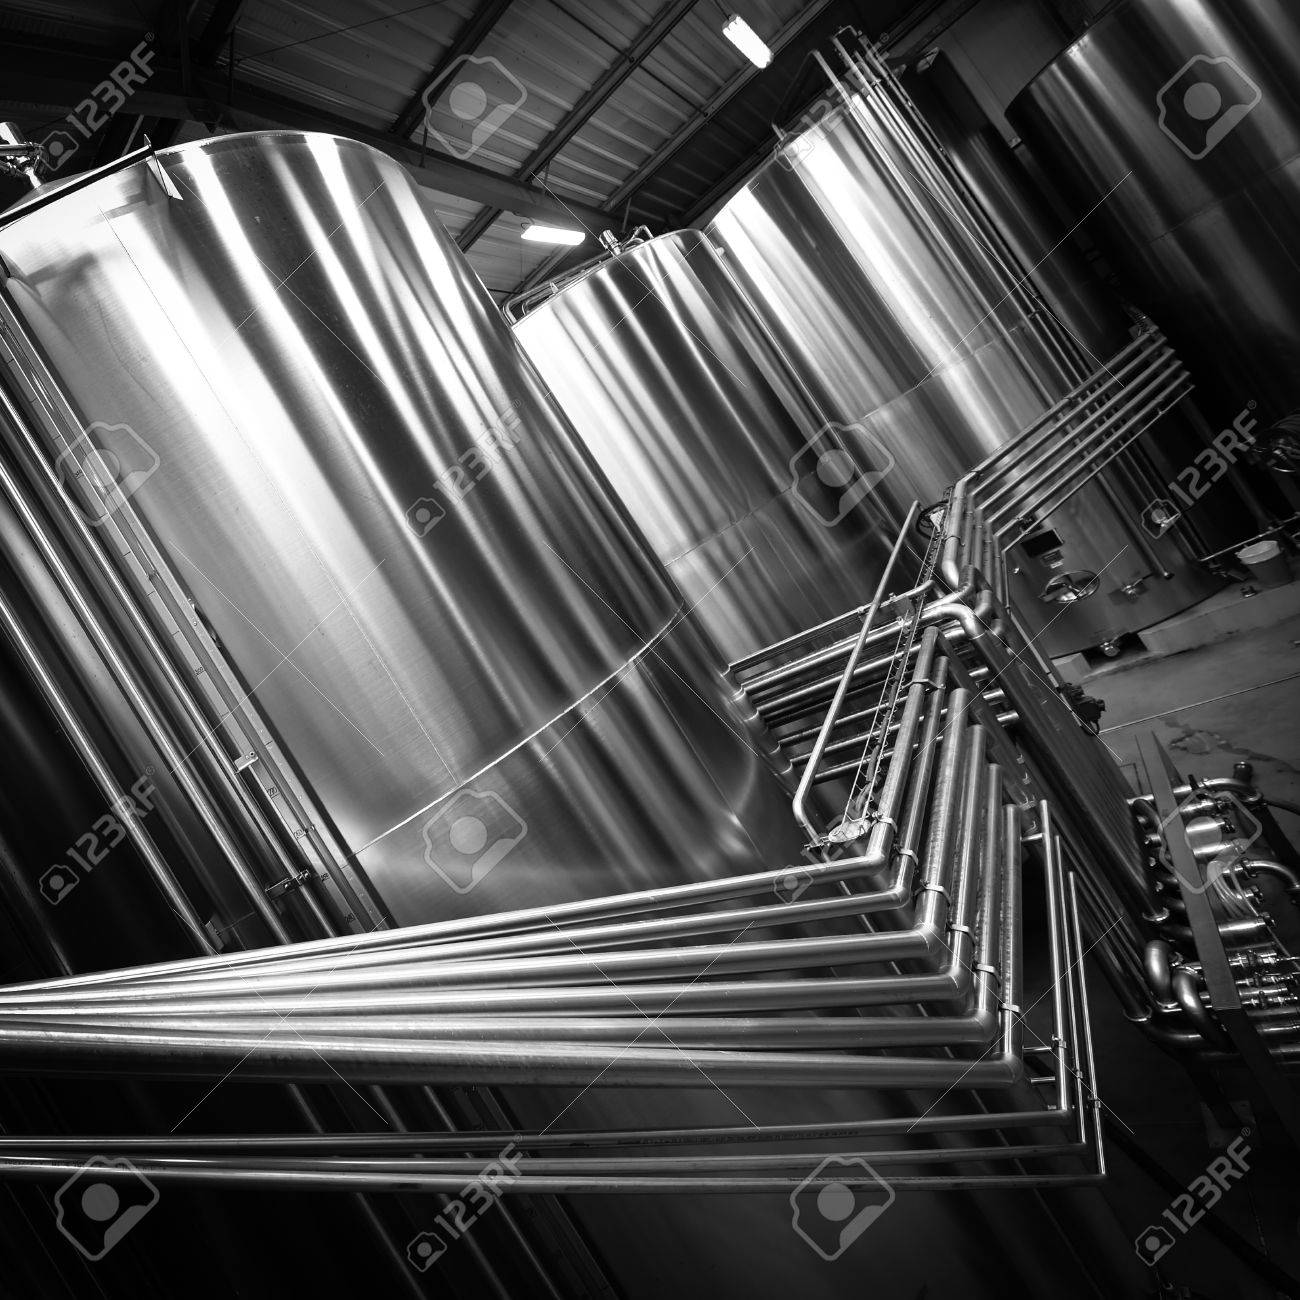 Stainless steel tank at the winery for wine maturation Stock Photo - 56901436